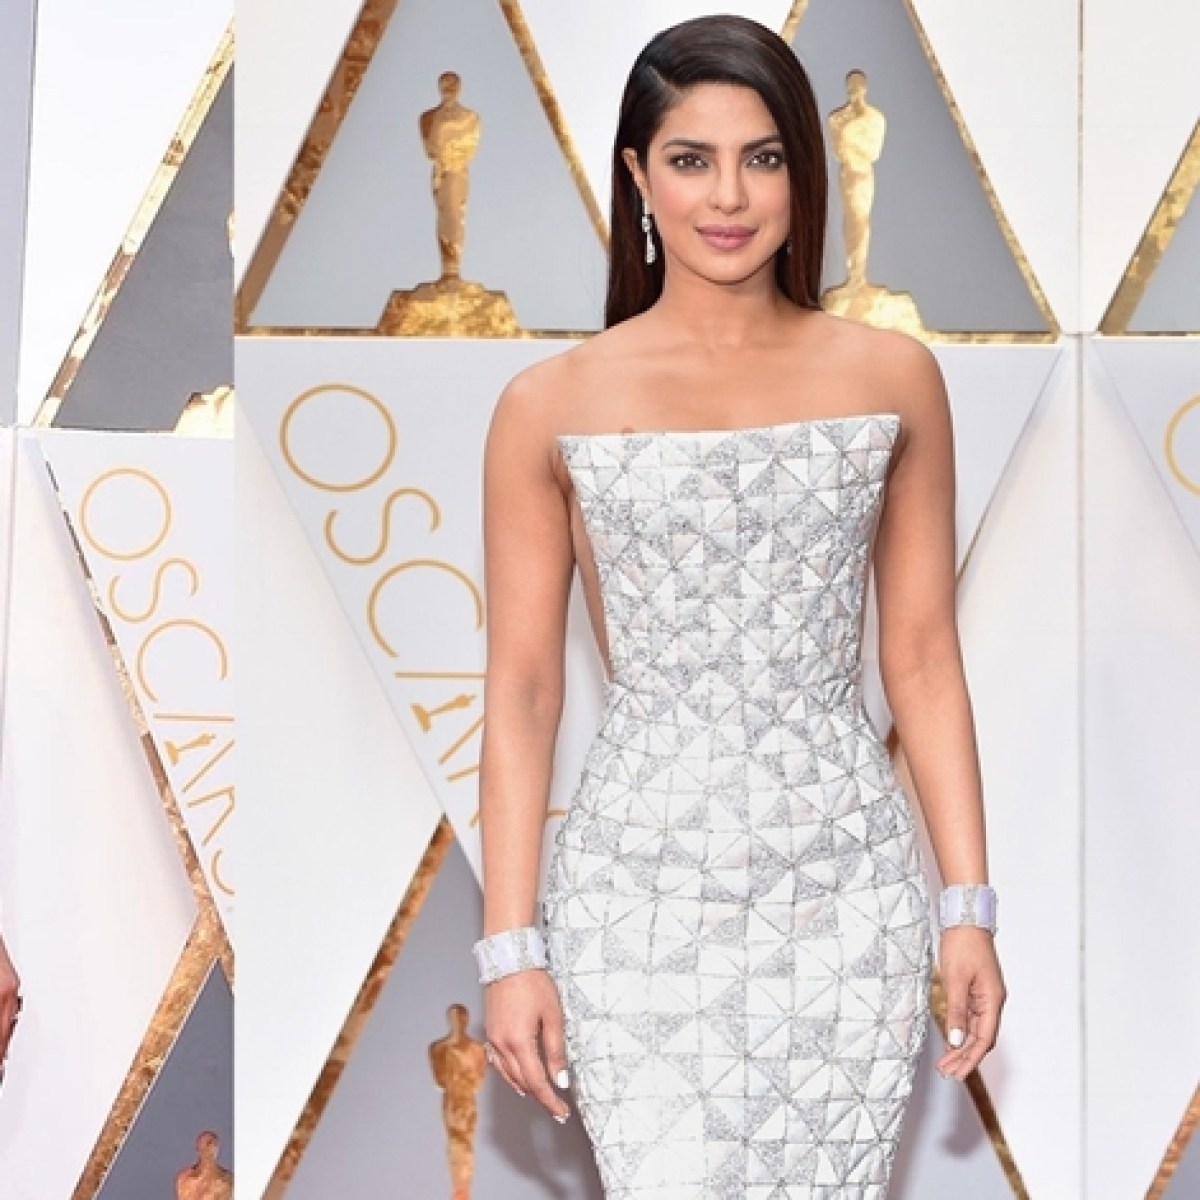 Priyanka Chopra gives Oscars 2020 a miss, shares throwback photos